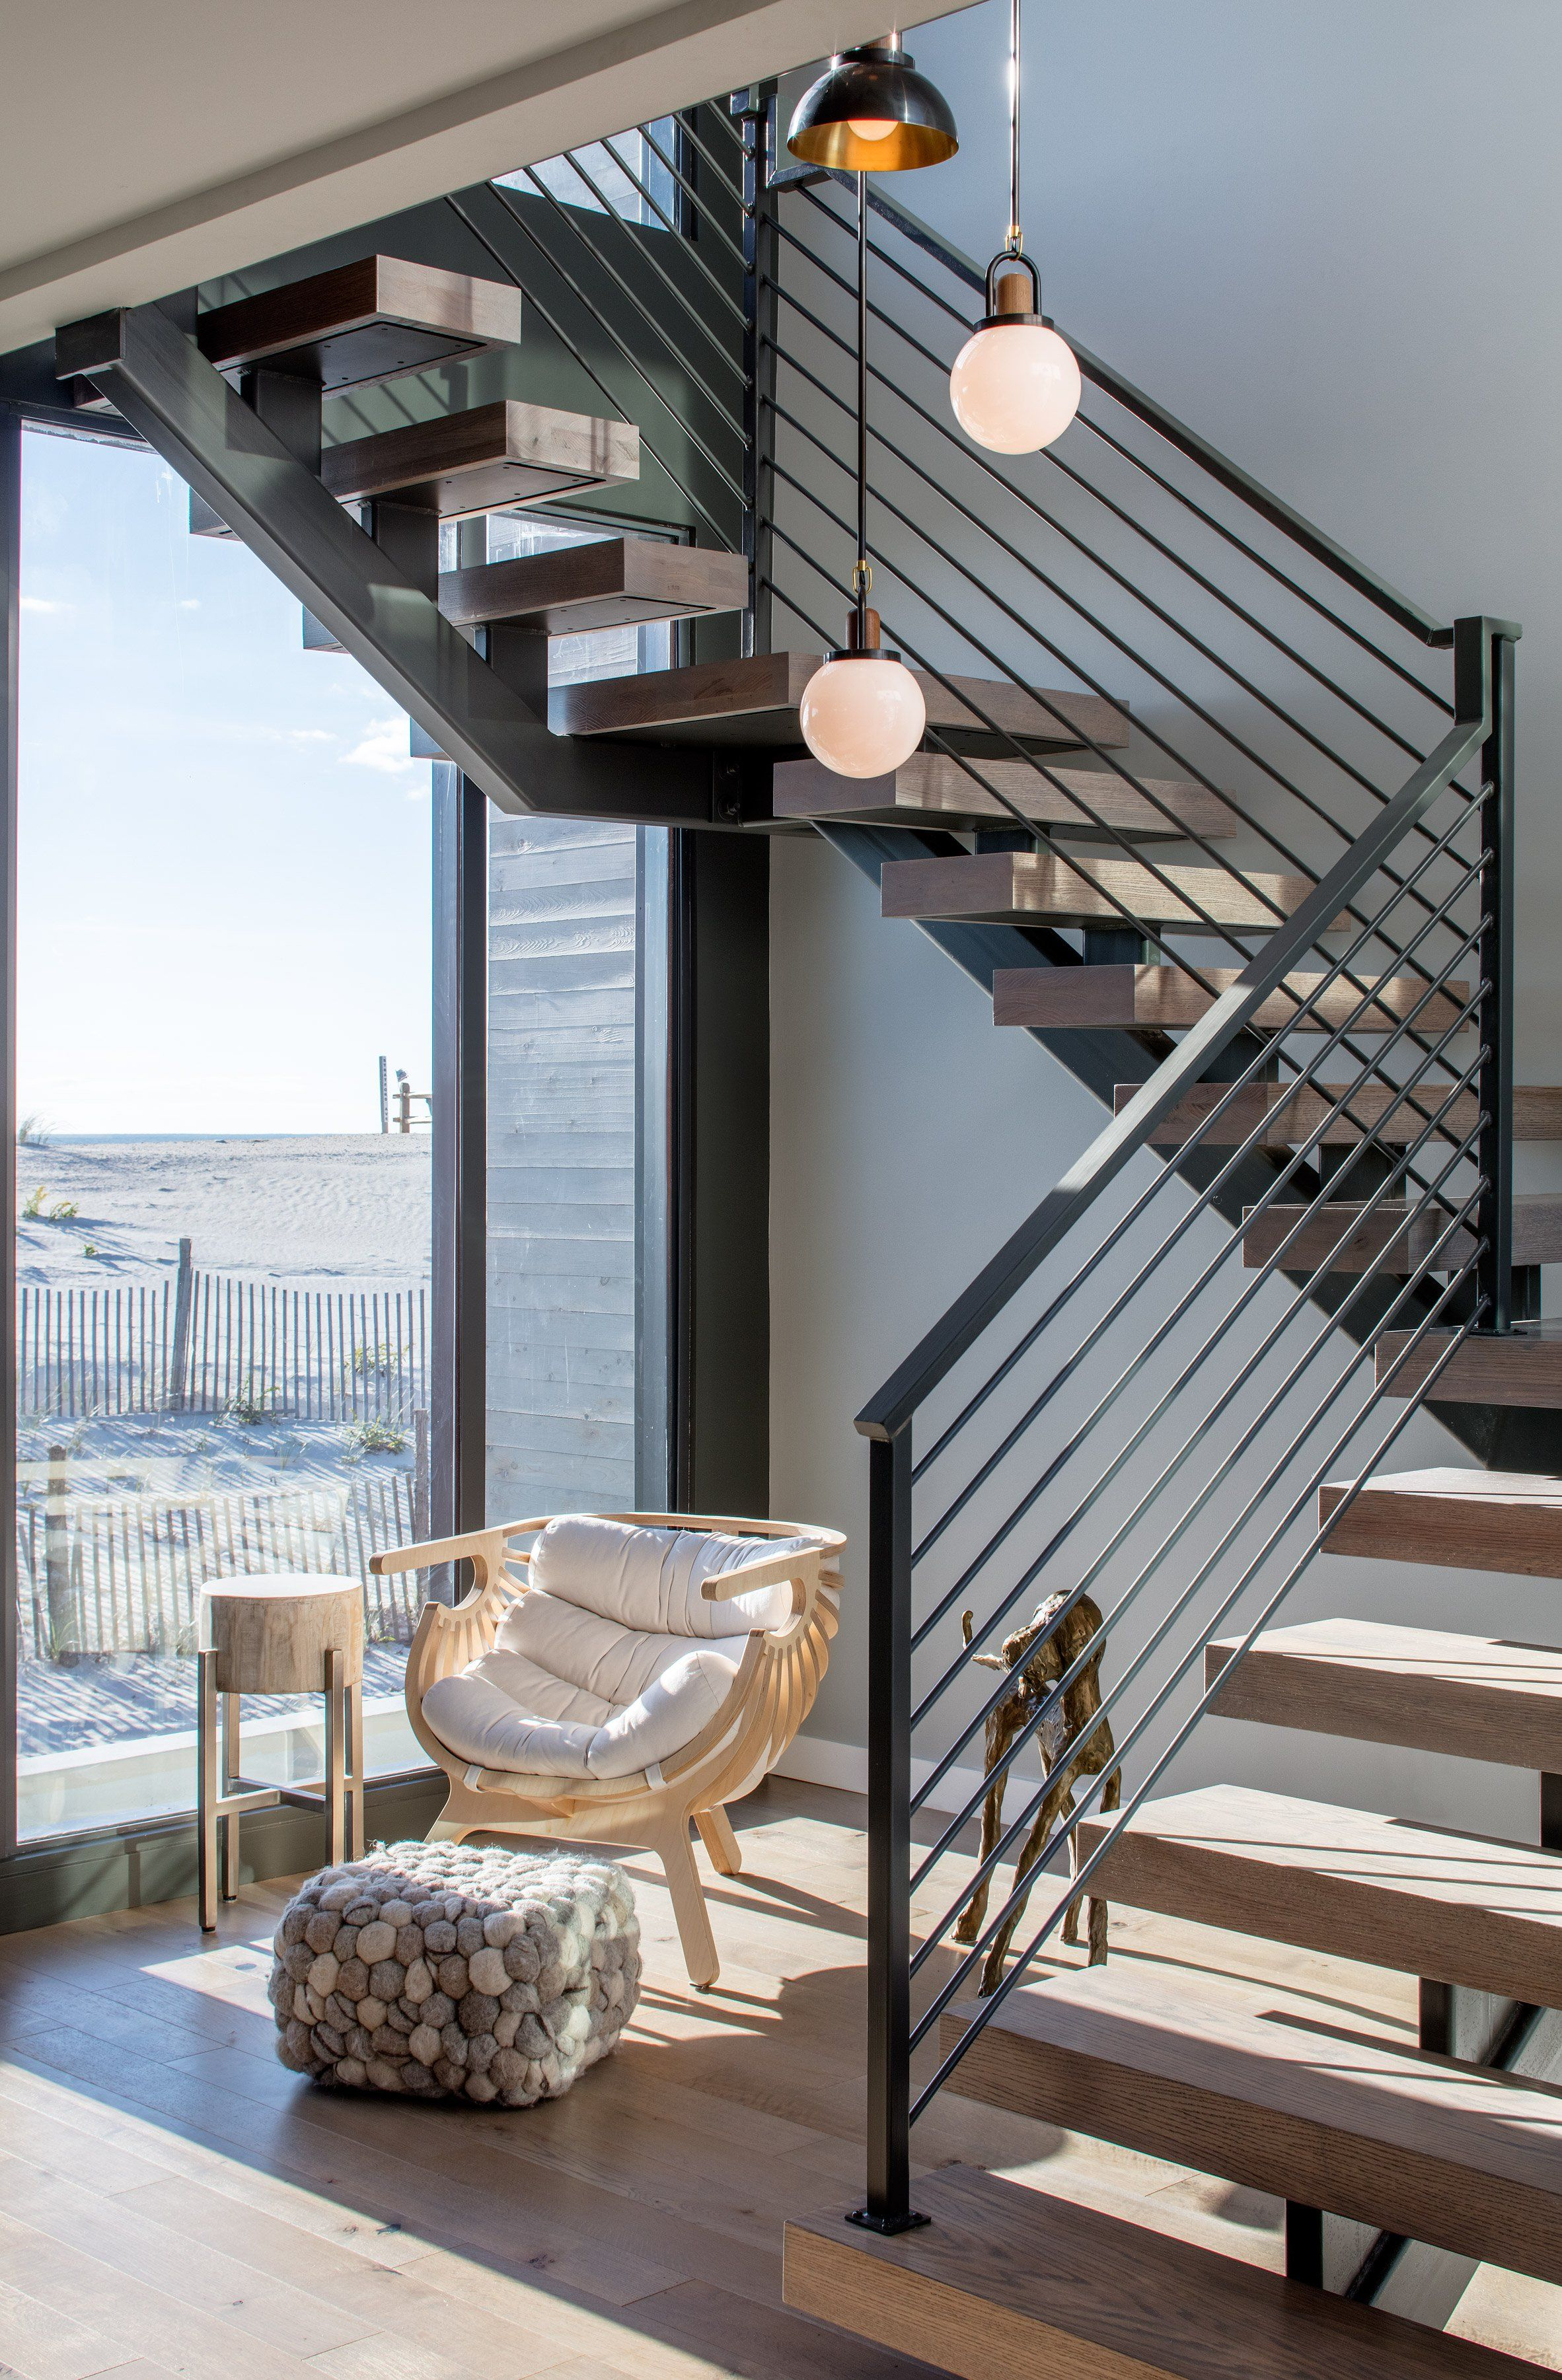 Home interior stairs specht architects constructs lofty beach haven residence in new